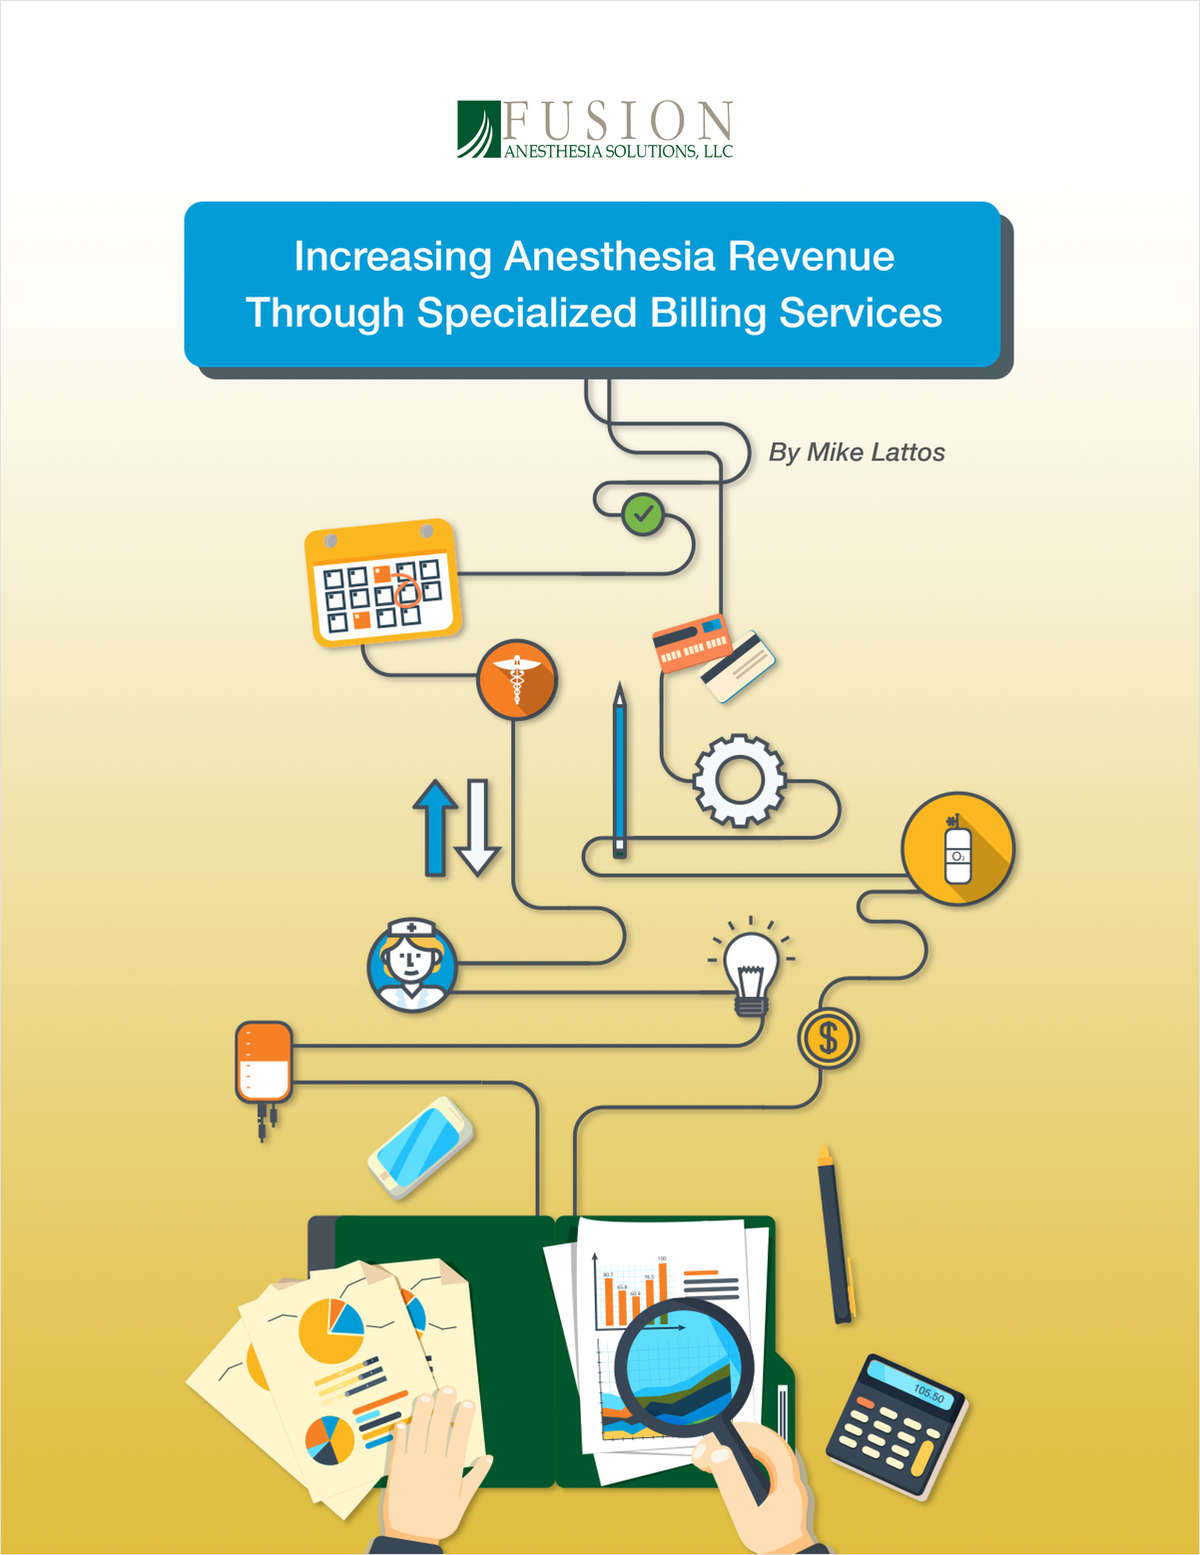 Increasing Anesthesia Revenue Through Specialized Billing Services